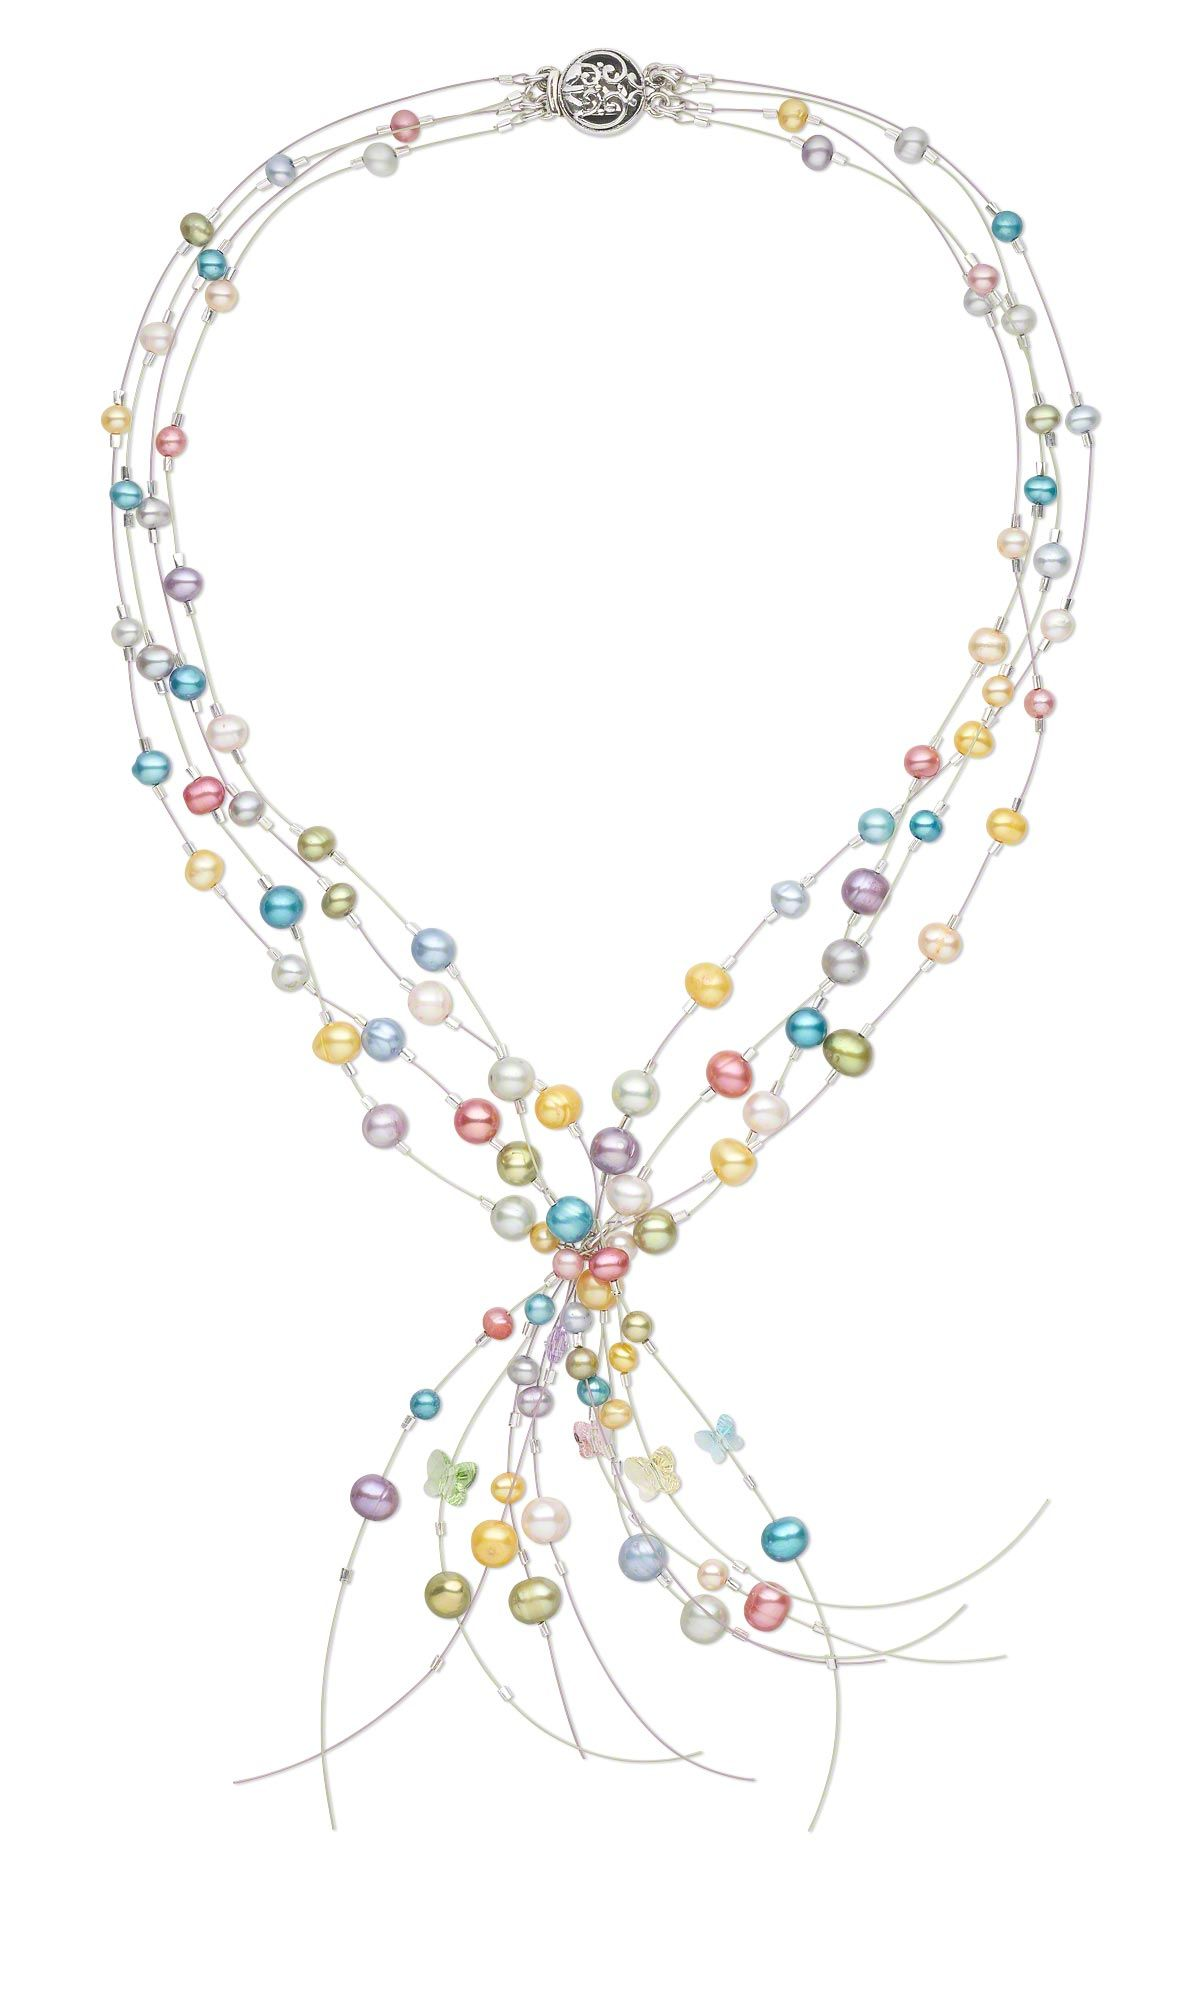 Jewelry Design - Multi-Strand Necklace with Cultured Freshwater ...